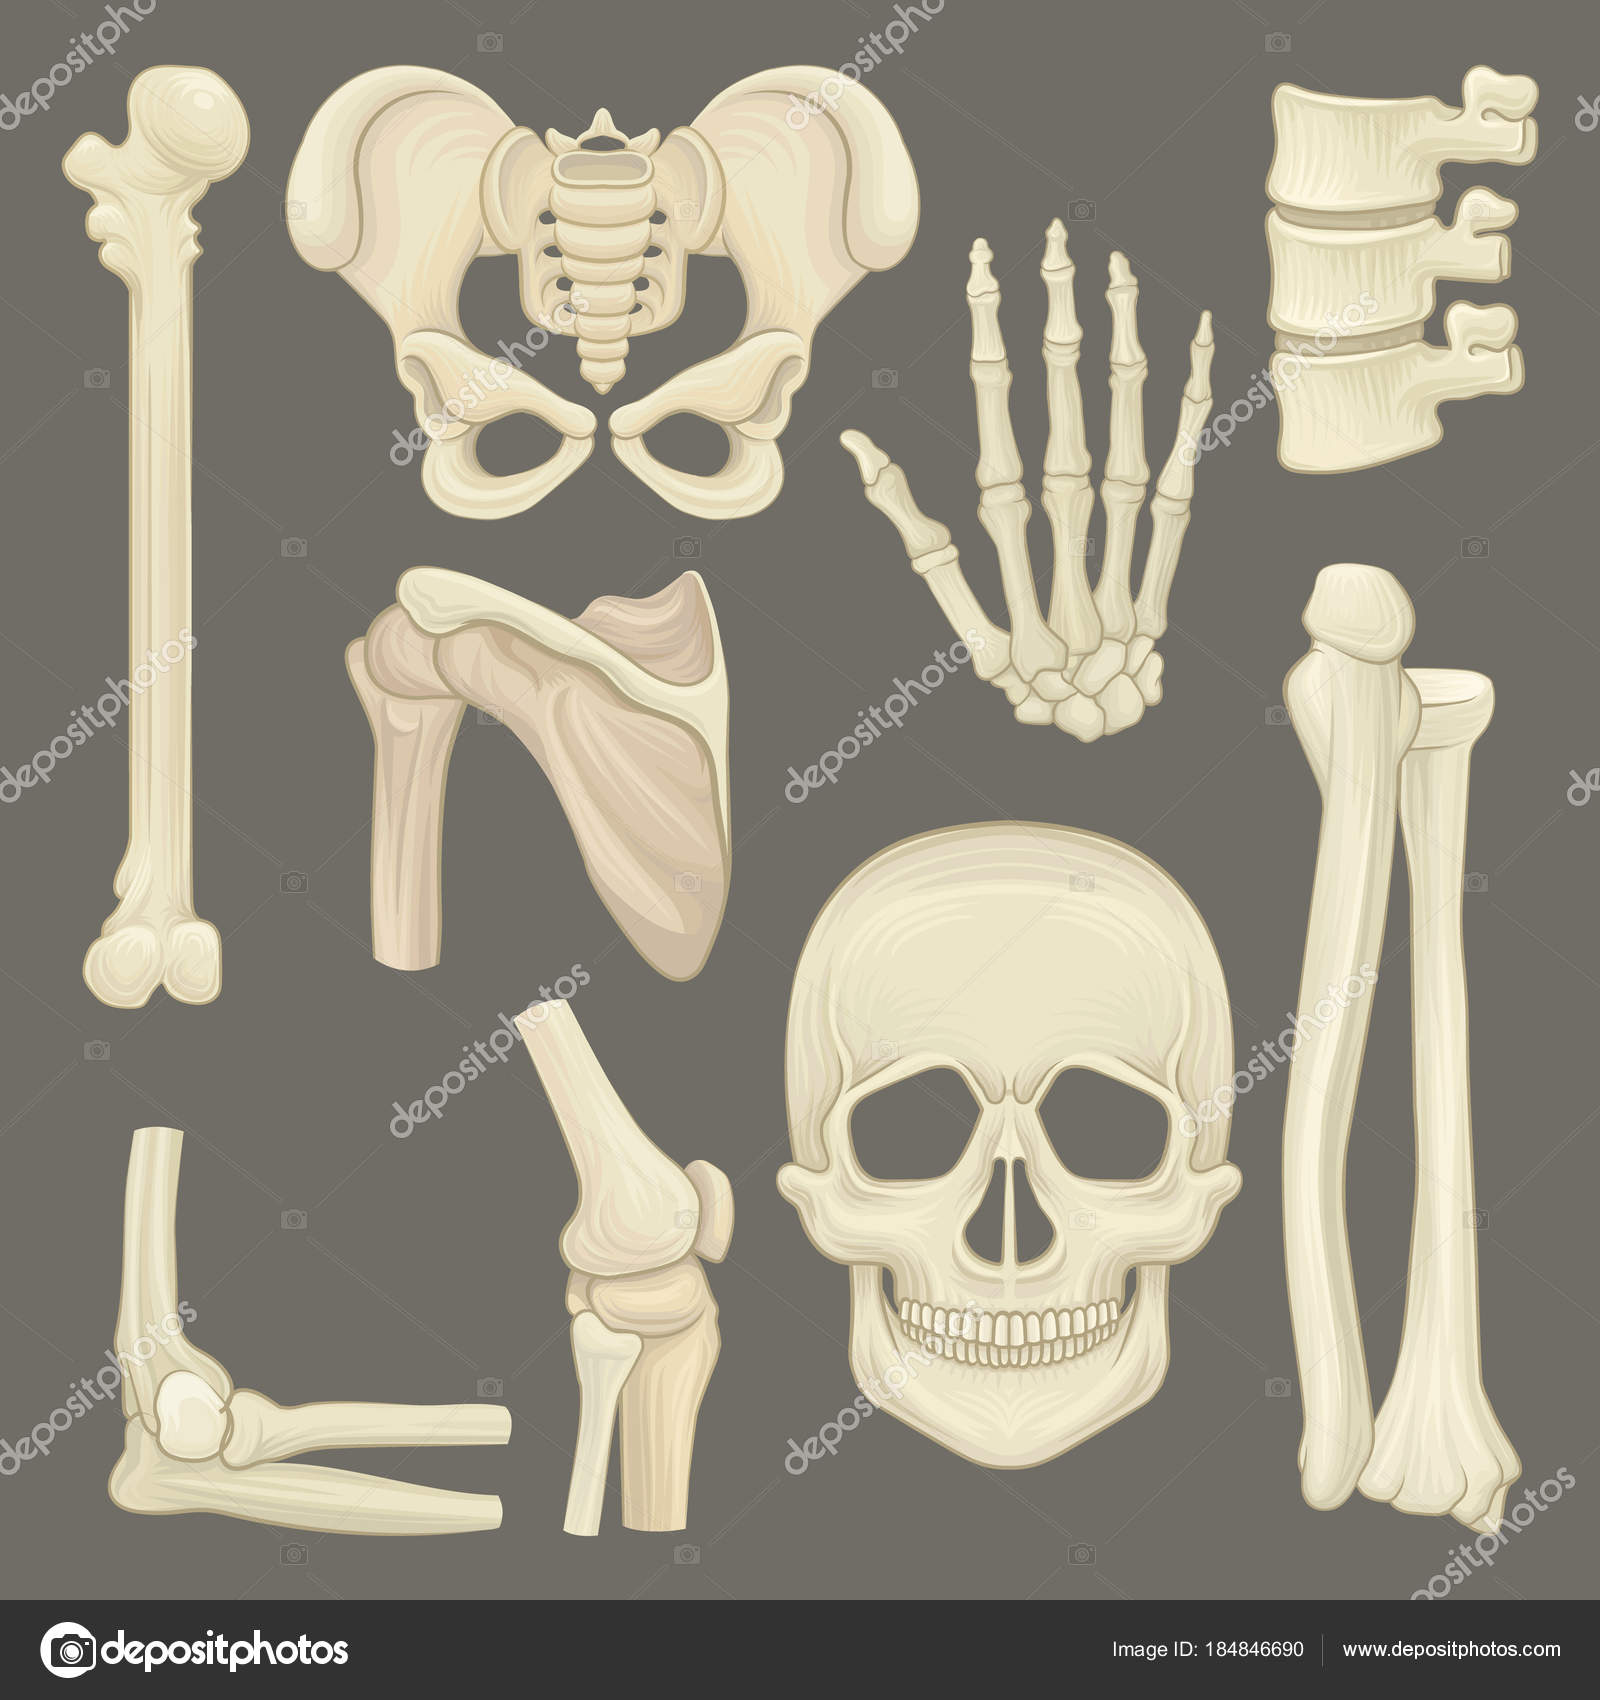 Parts of human skeleton. Skull, pelvic girdle, hand, humerus, lumbar ...